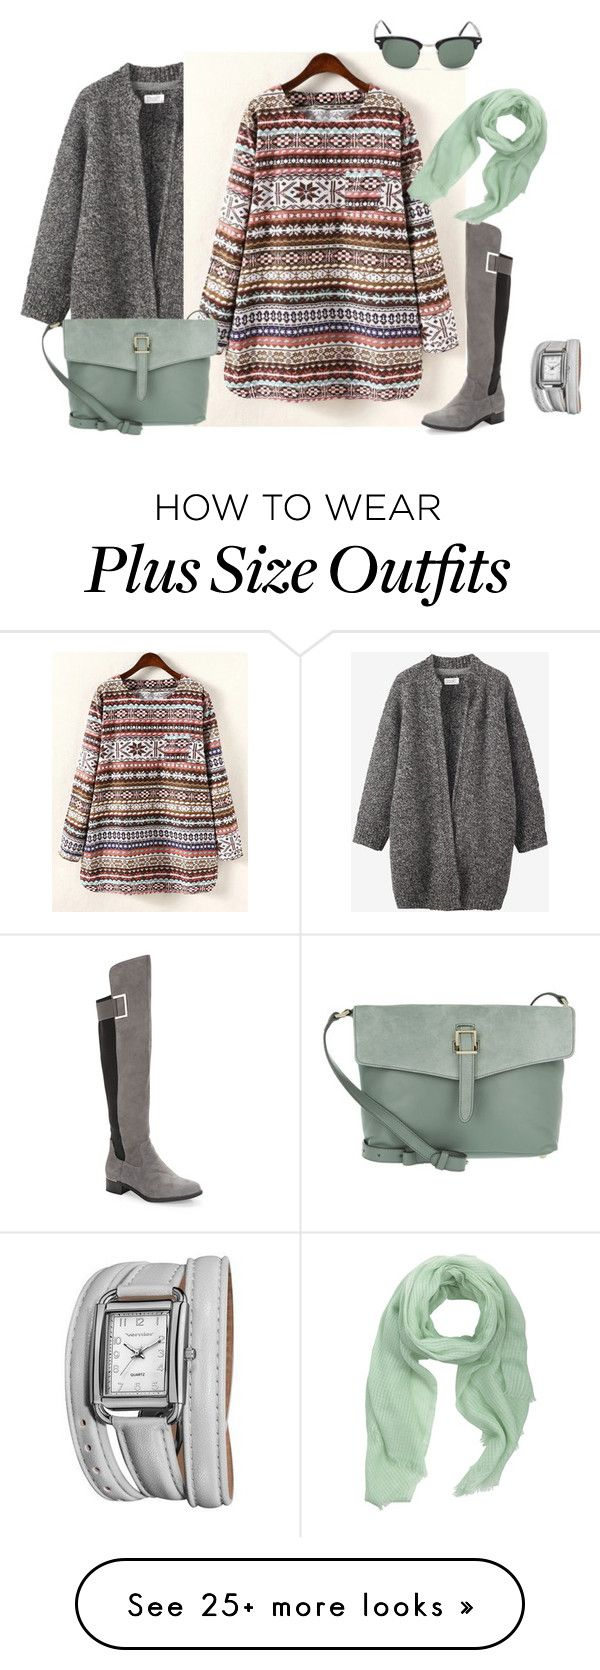 """""""outfit 4932"""" by natalyag on Polyvore featuring Toast, Calvin Klein, Meli Melo, MANGO, Vernier and Moscot"""